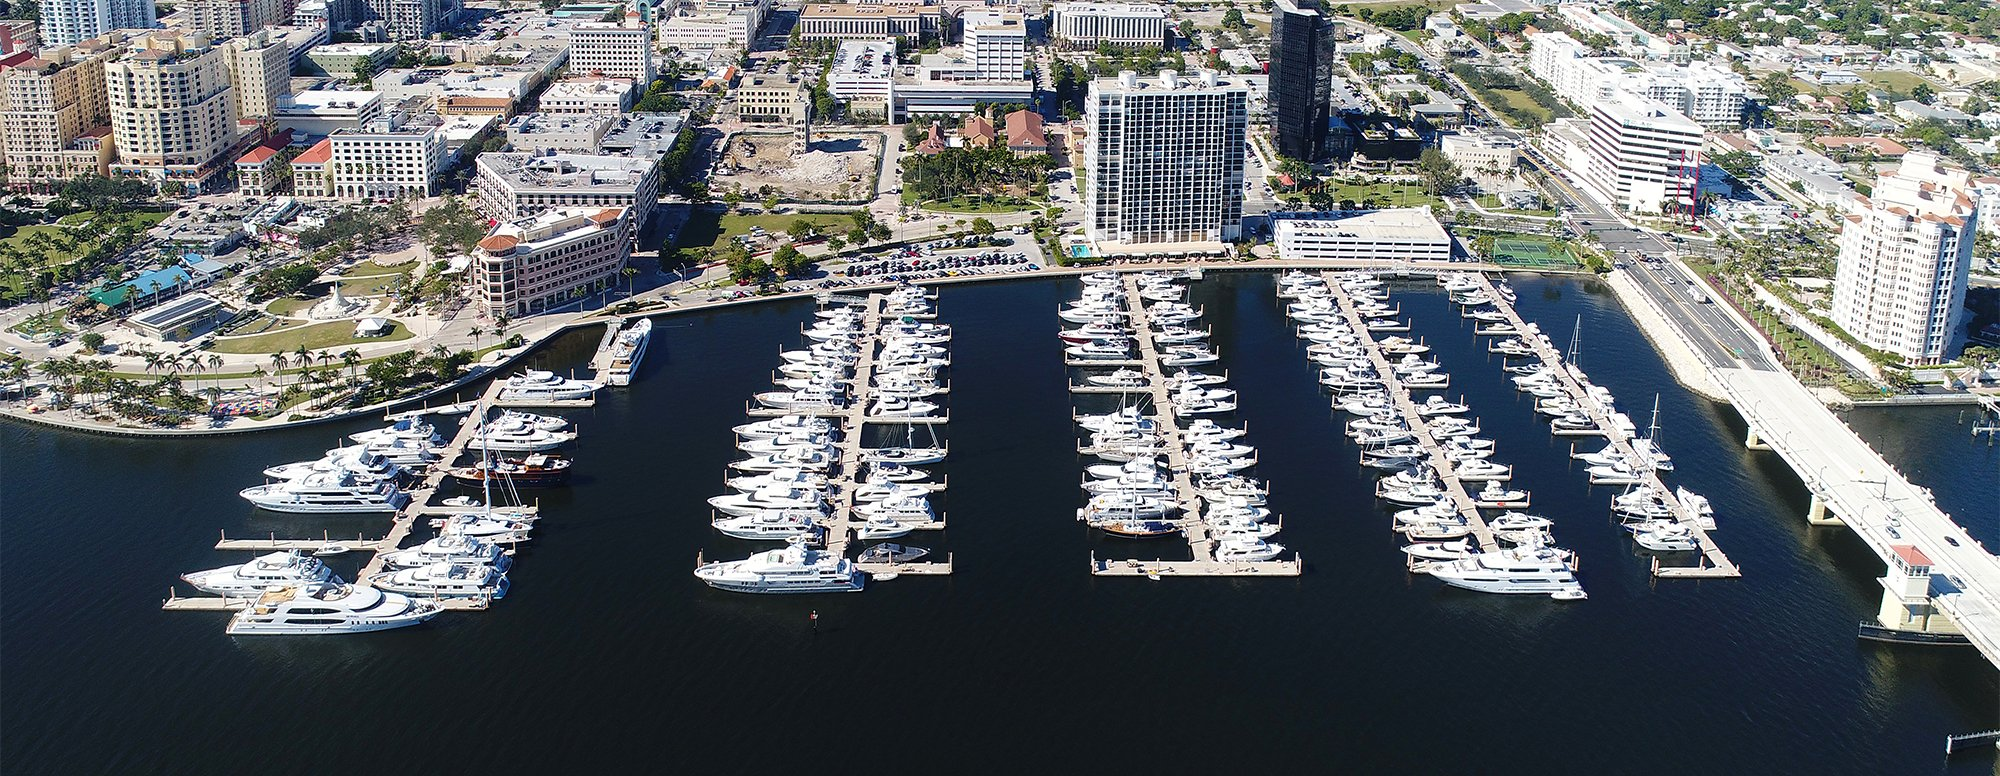 Palm Harbor Docks and Marina